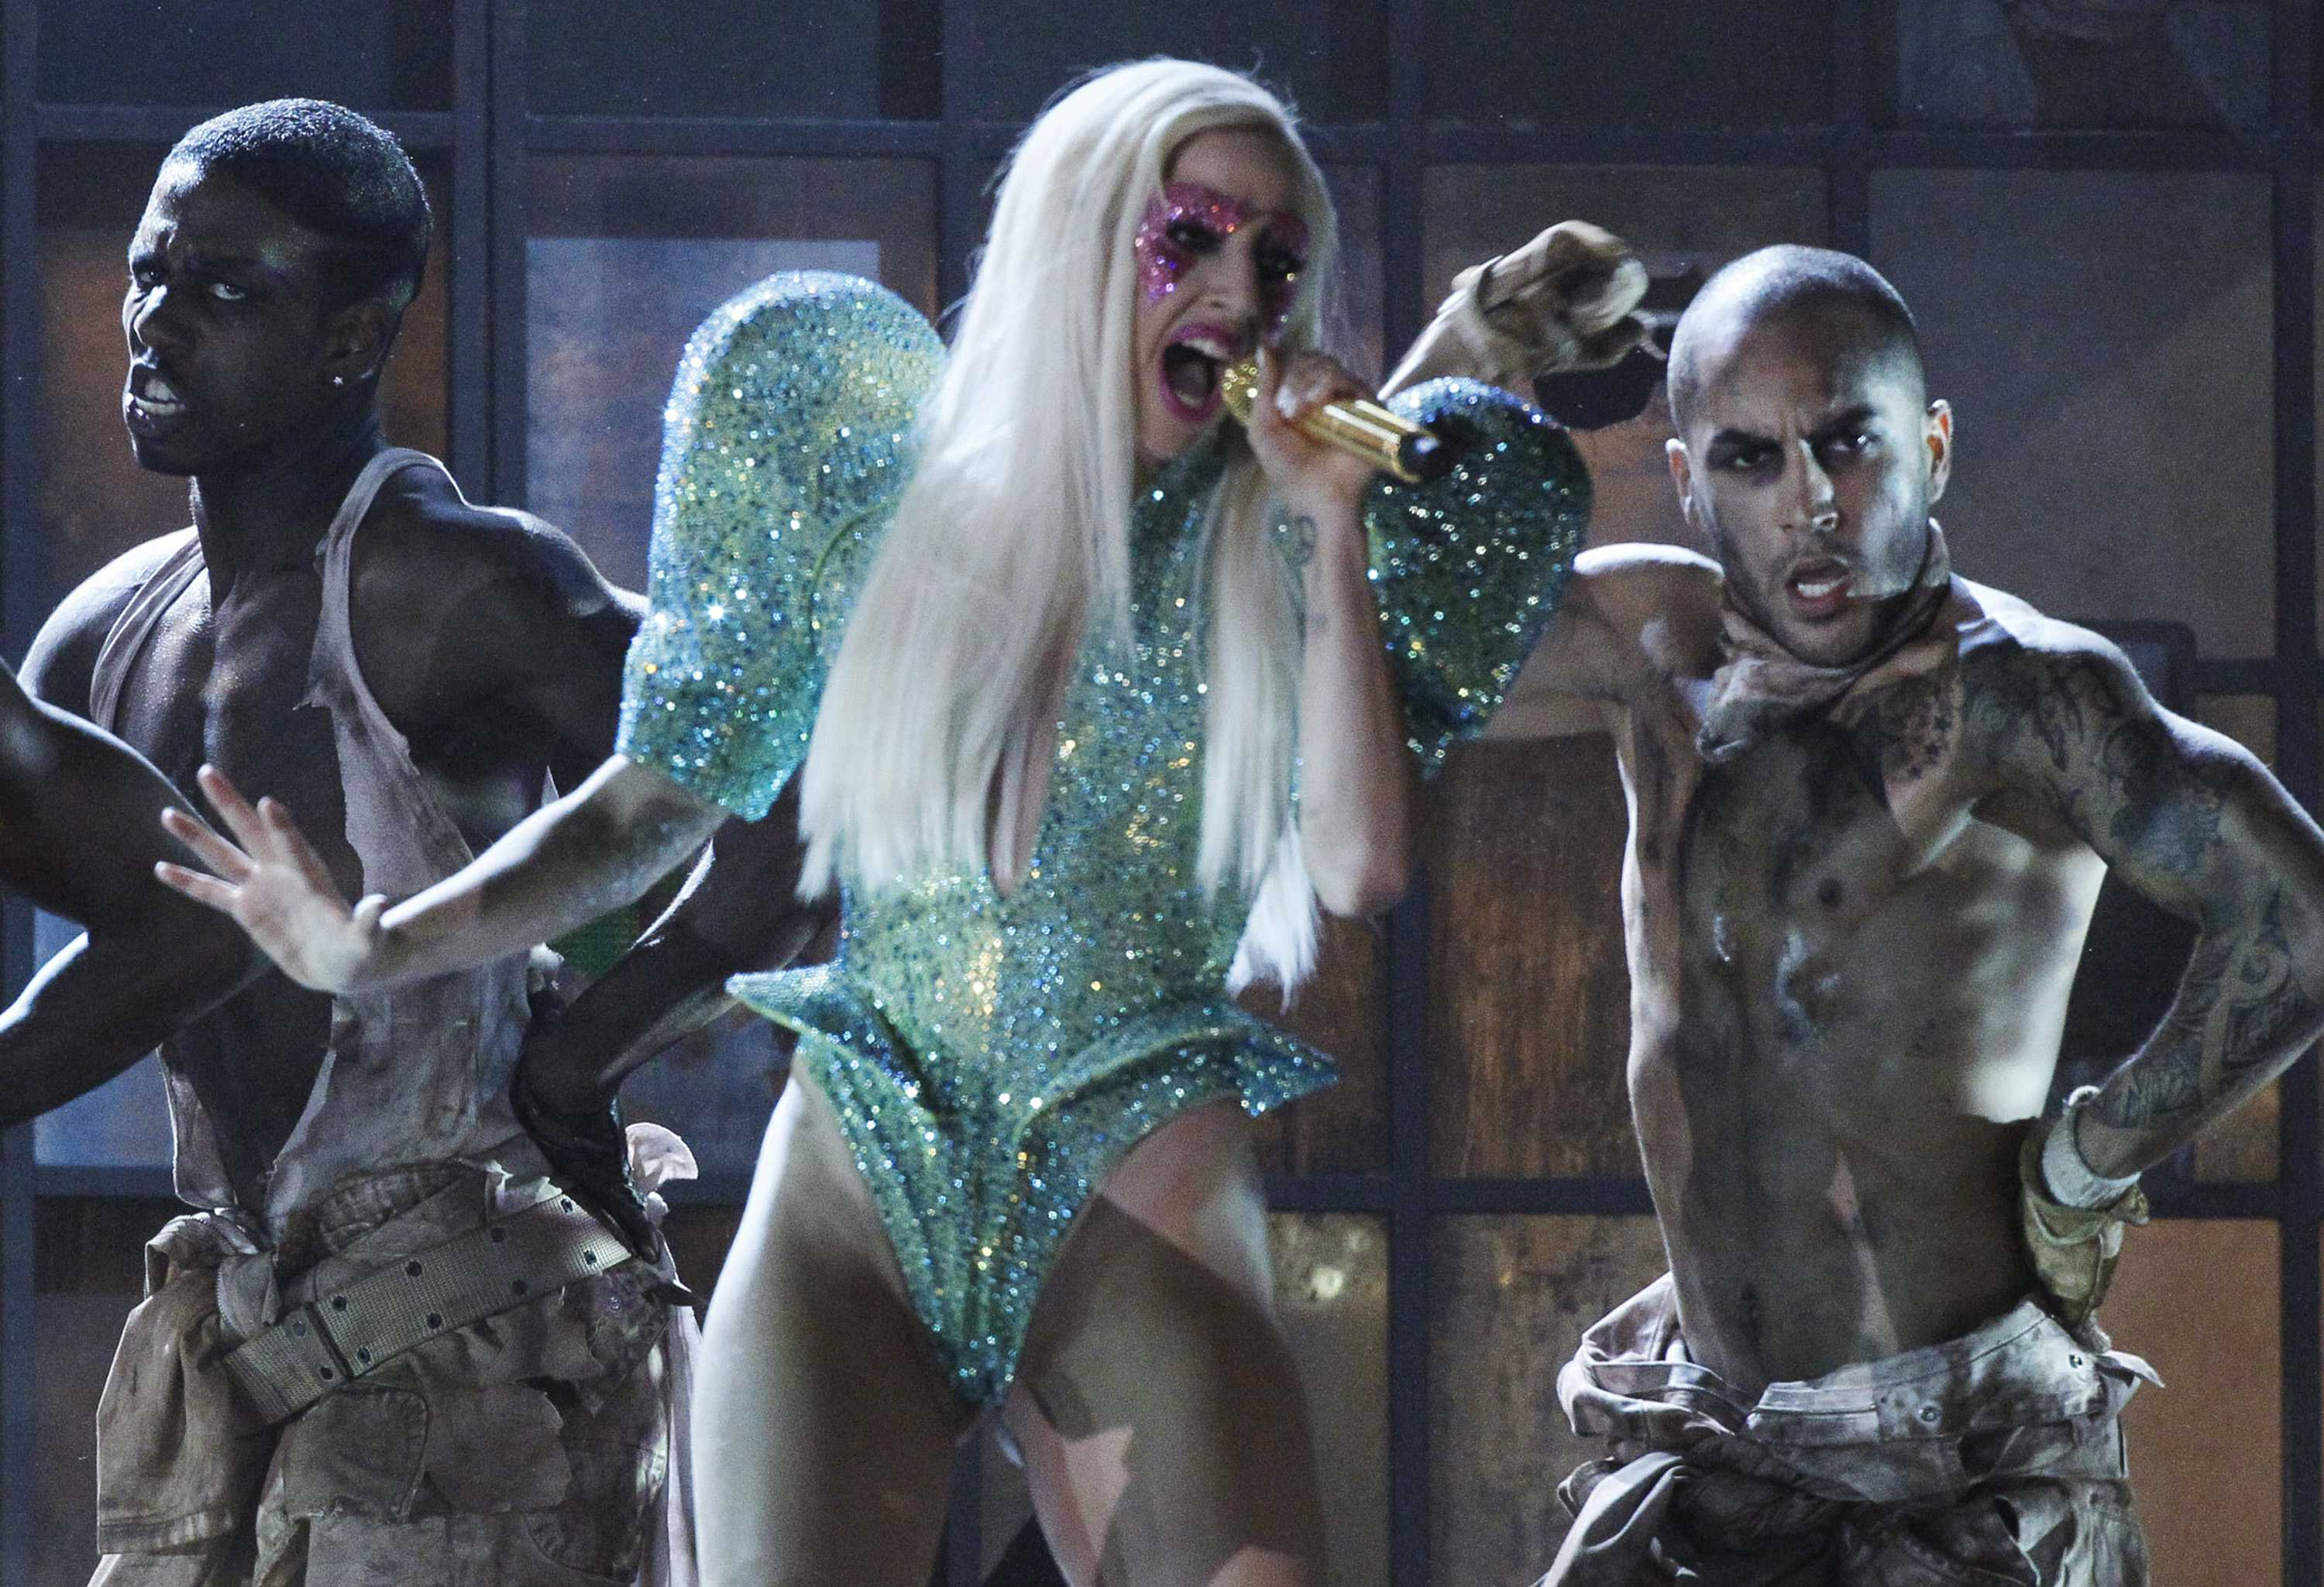 Lady+Gaga+performs+at+the+52nd+Annual+Grammy+Awards+at+the+Staples+Center+in+Los+Angeles%2C+California%2C+on+Sunday%2C+January+31%2C+2010.+%28Robert+Gauthier%2FLos+Angeles+Times%2FMCT%29